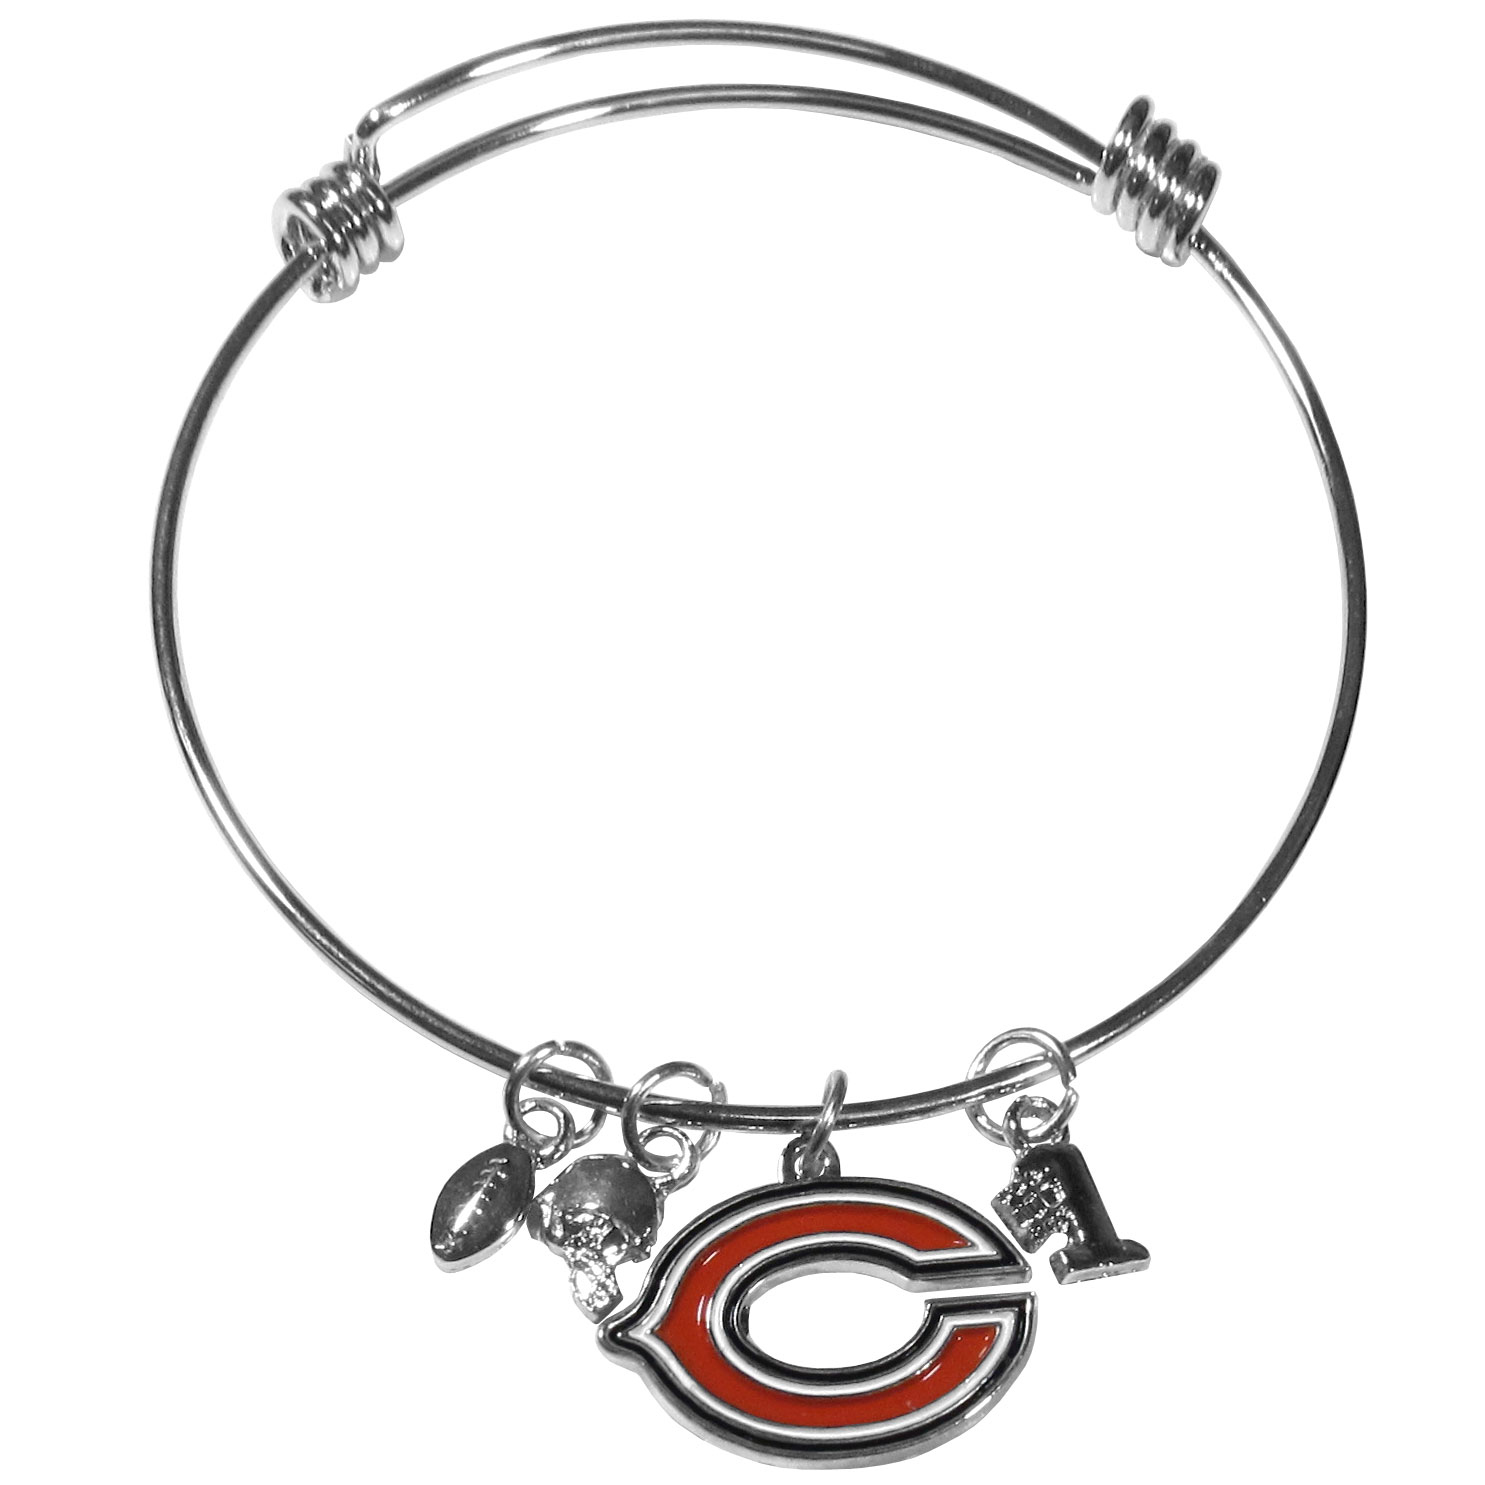 Chicago Bears Charm Bangle Bracelet - Adjustable wire bracelets are all the rage and this Chicago Bears bracelet matches the popular trend with your beloved team. The bracelet features 4 charms in total, each feature exceptional detail and the team charm has enameled team colors.